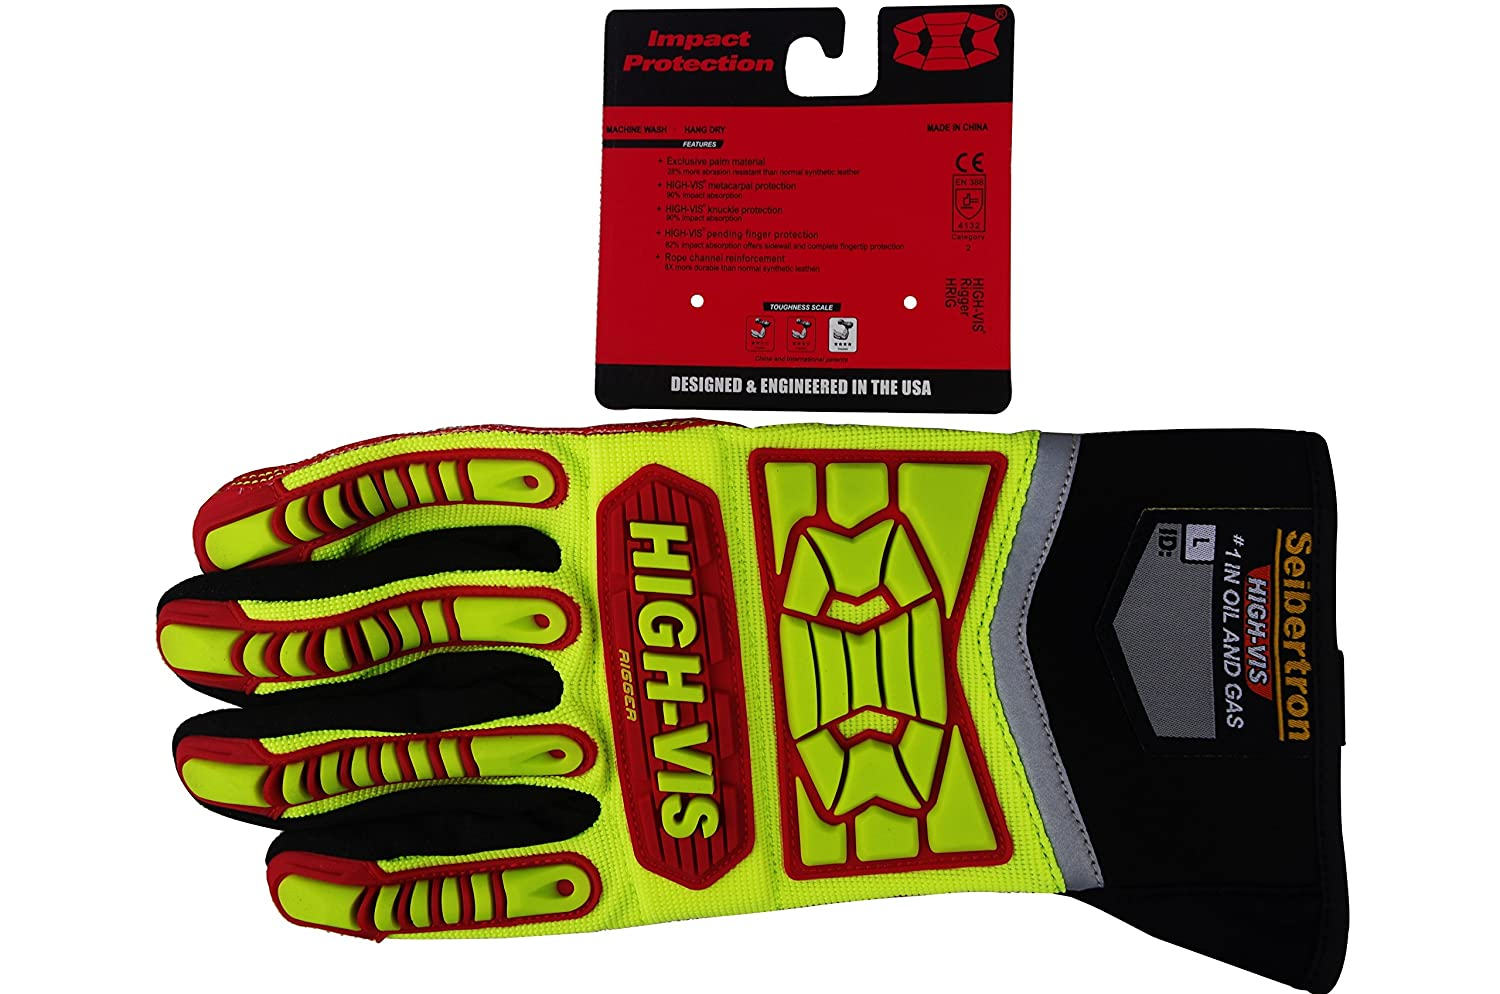 Seibertron HIGH-VIS HRIG Anti Impact Work Gloves Hi-Vis Oil and Gas Water Resistant Safety Heavy Duty Utility Mechanic Rigger Glove with TPR Protection ...